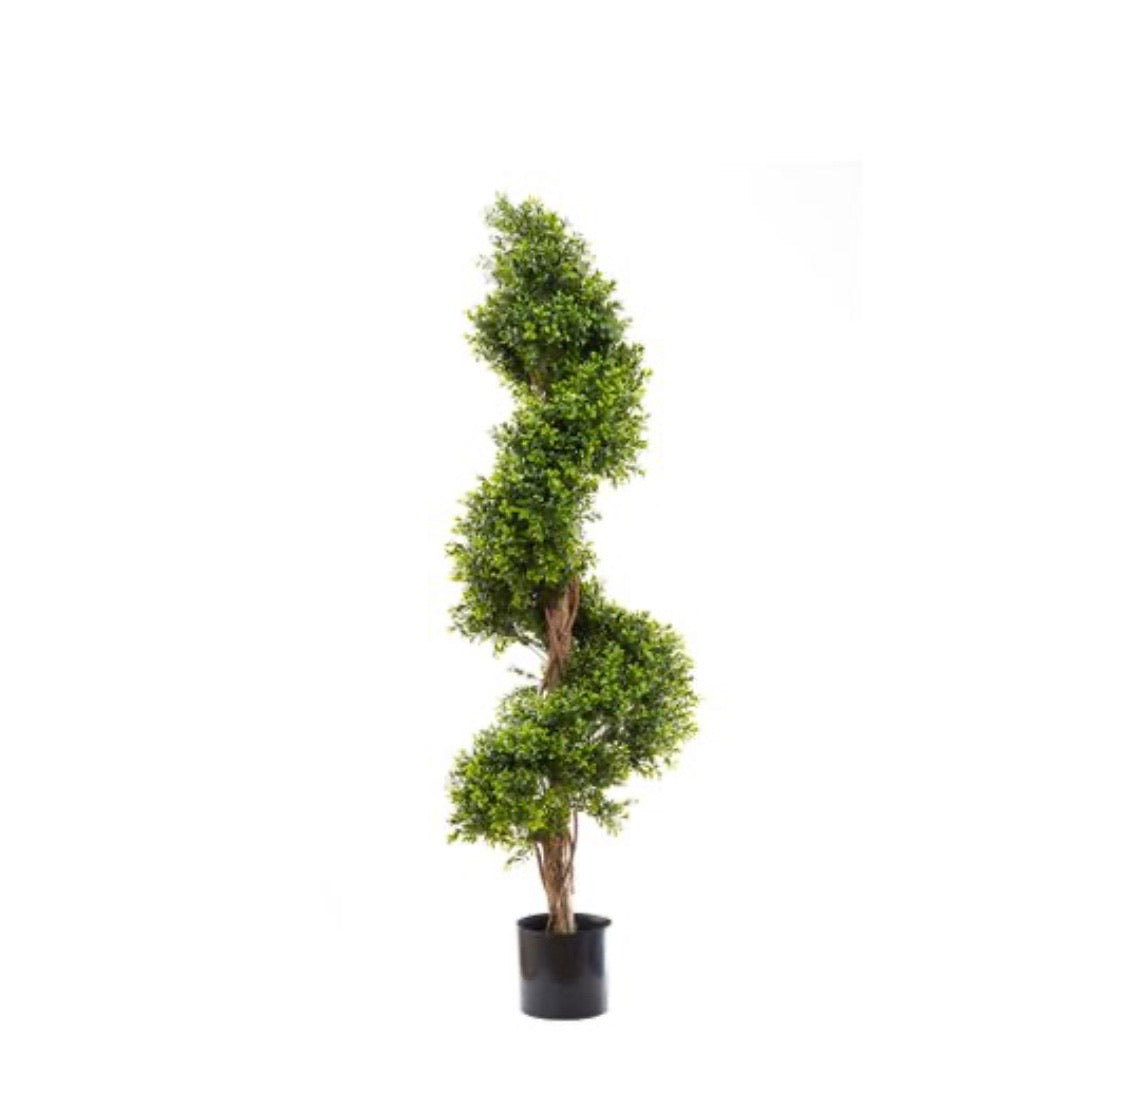 Boxwood Spiral Topiary Tree